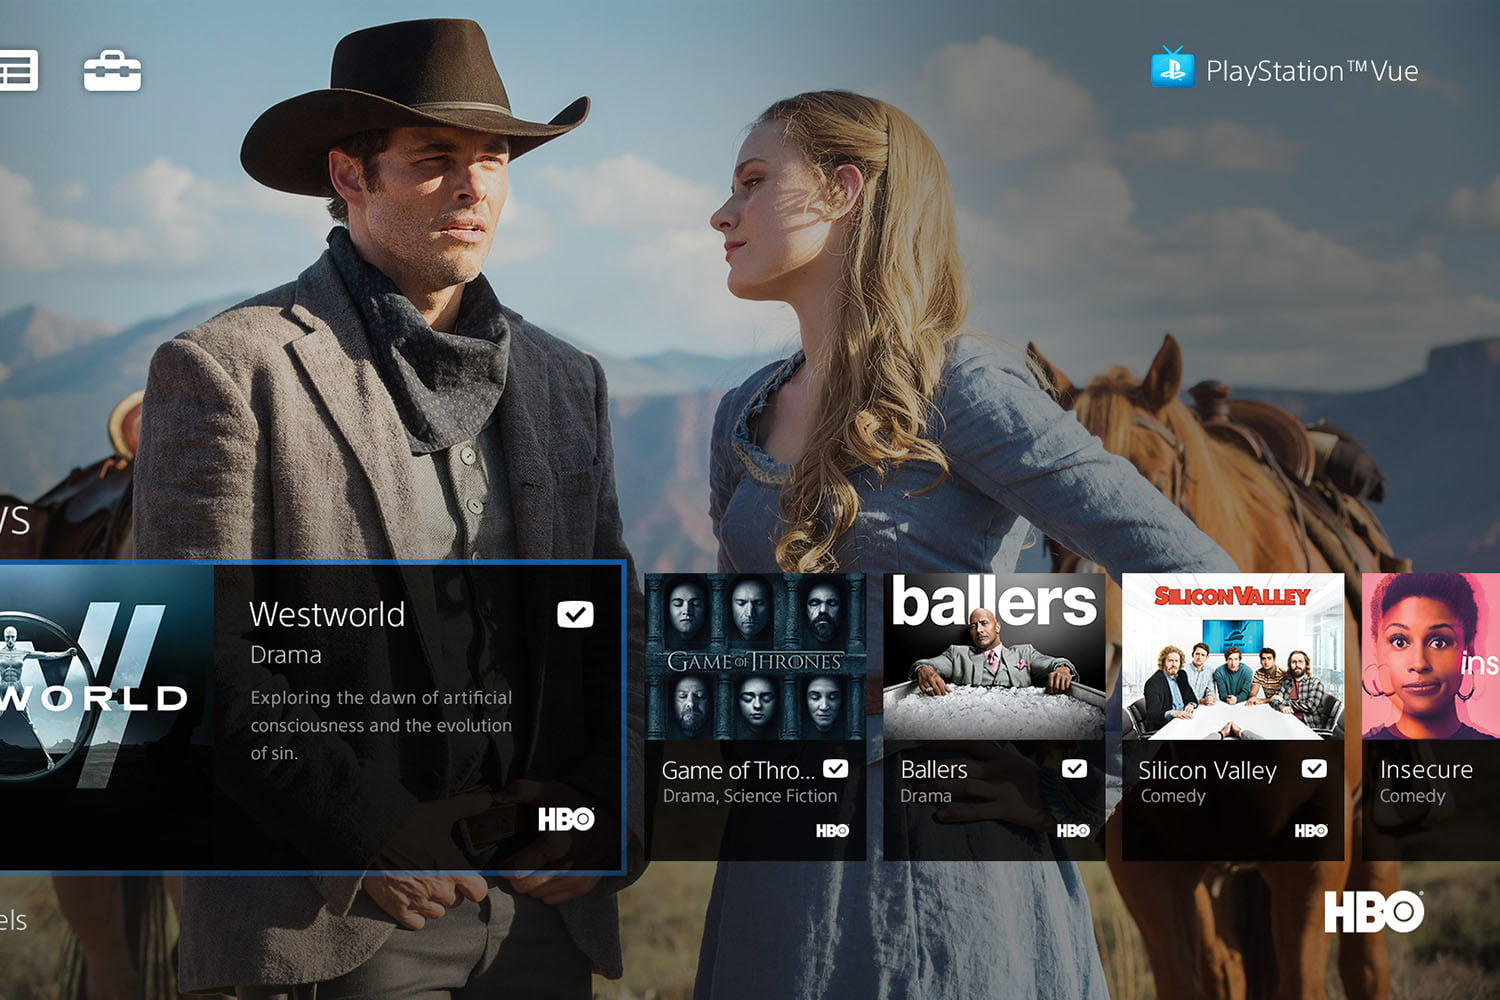 Sony wants to sell PlayStation Vue as streaming industry gets more crowded